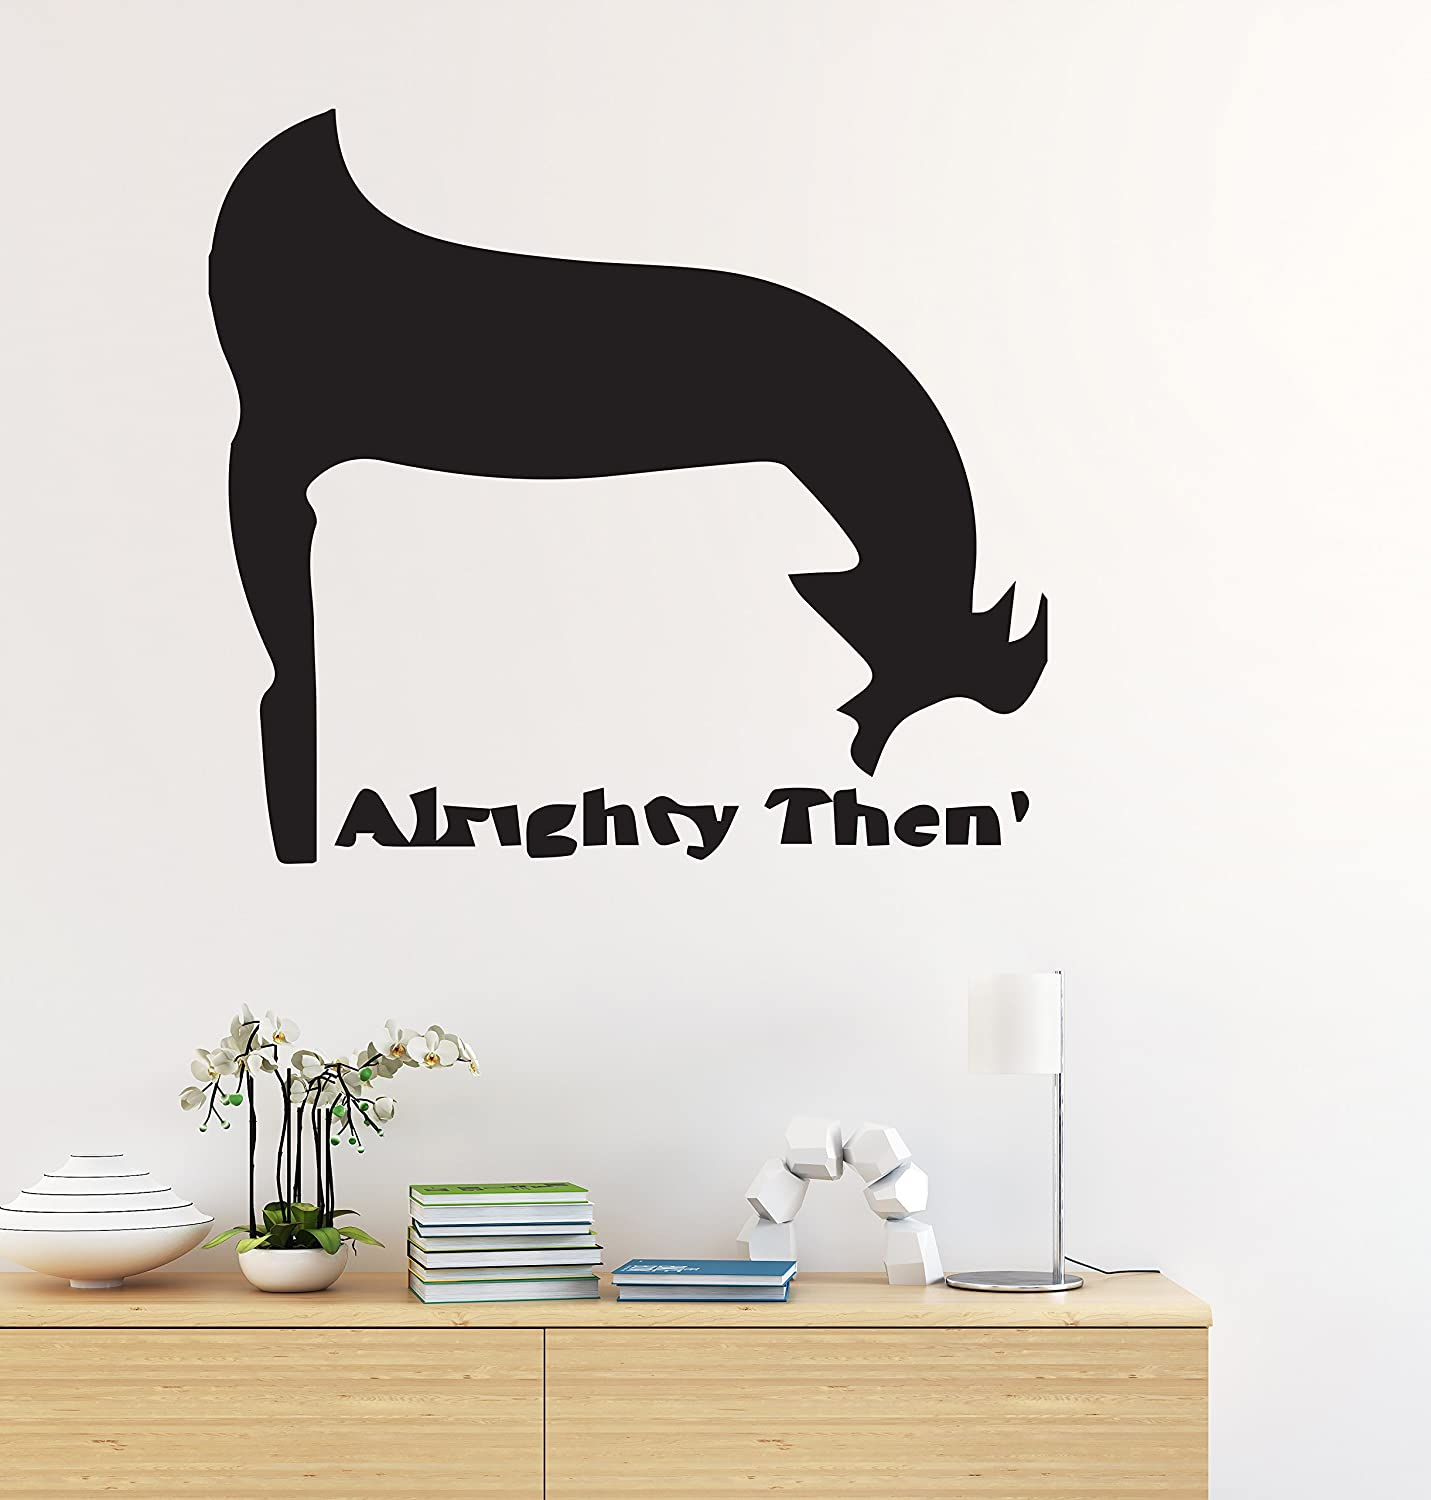 Ace ventura wall decal pet detective alrighty then vinyl sticker zany private investigator bedroom living any room home decoration cg305 30 width x